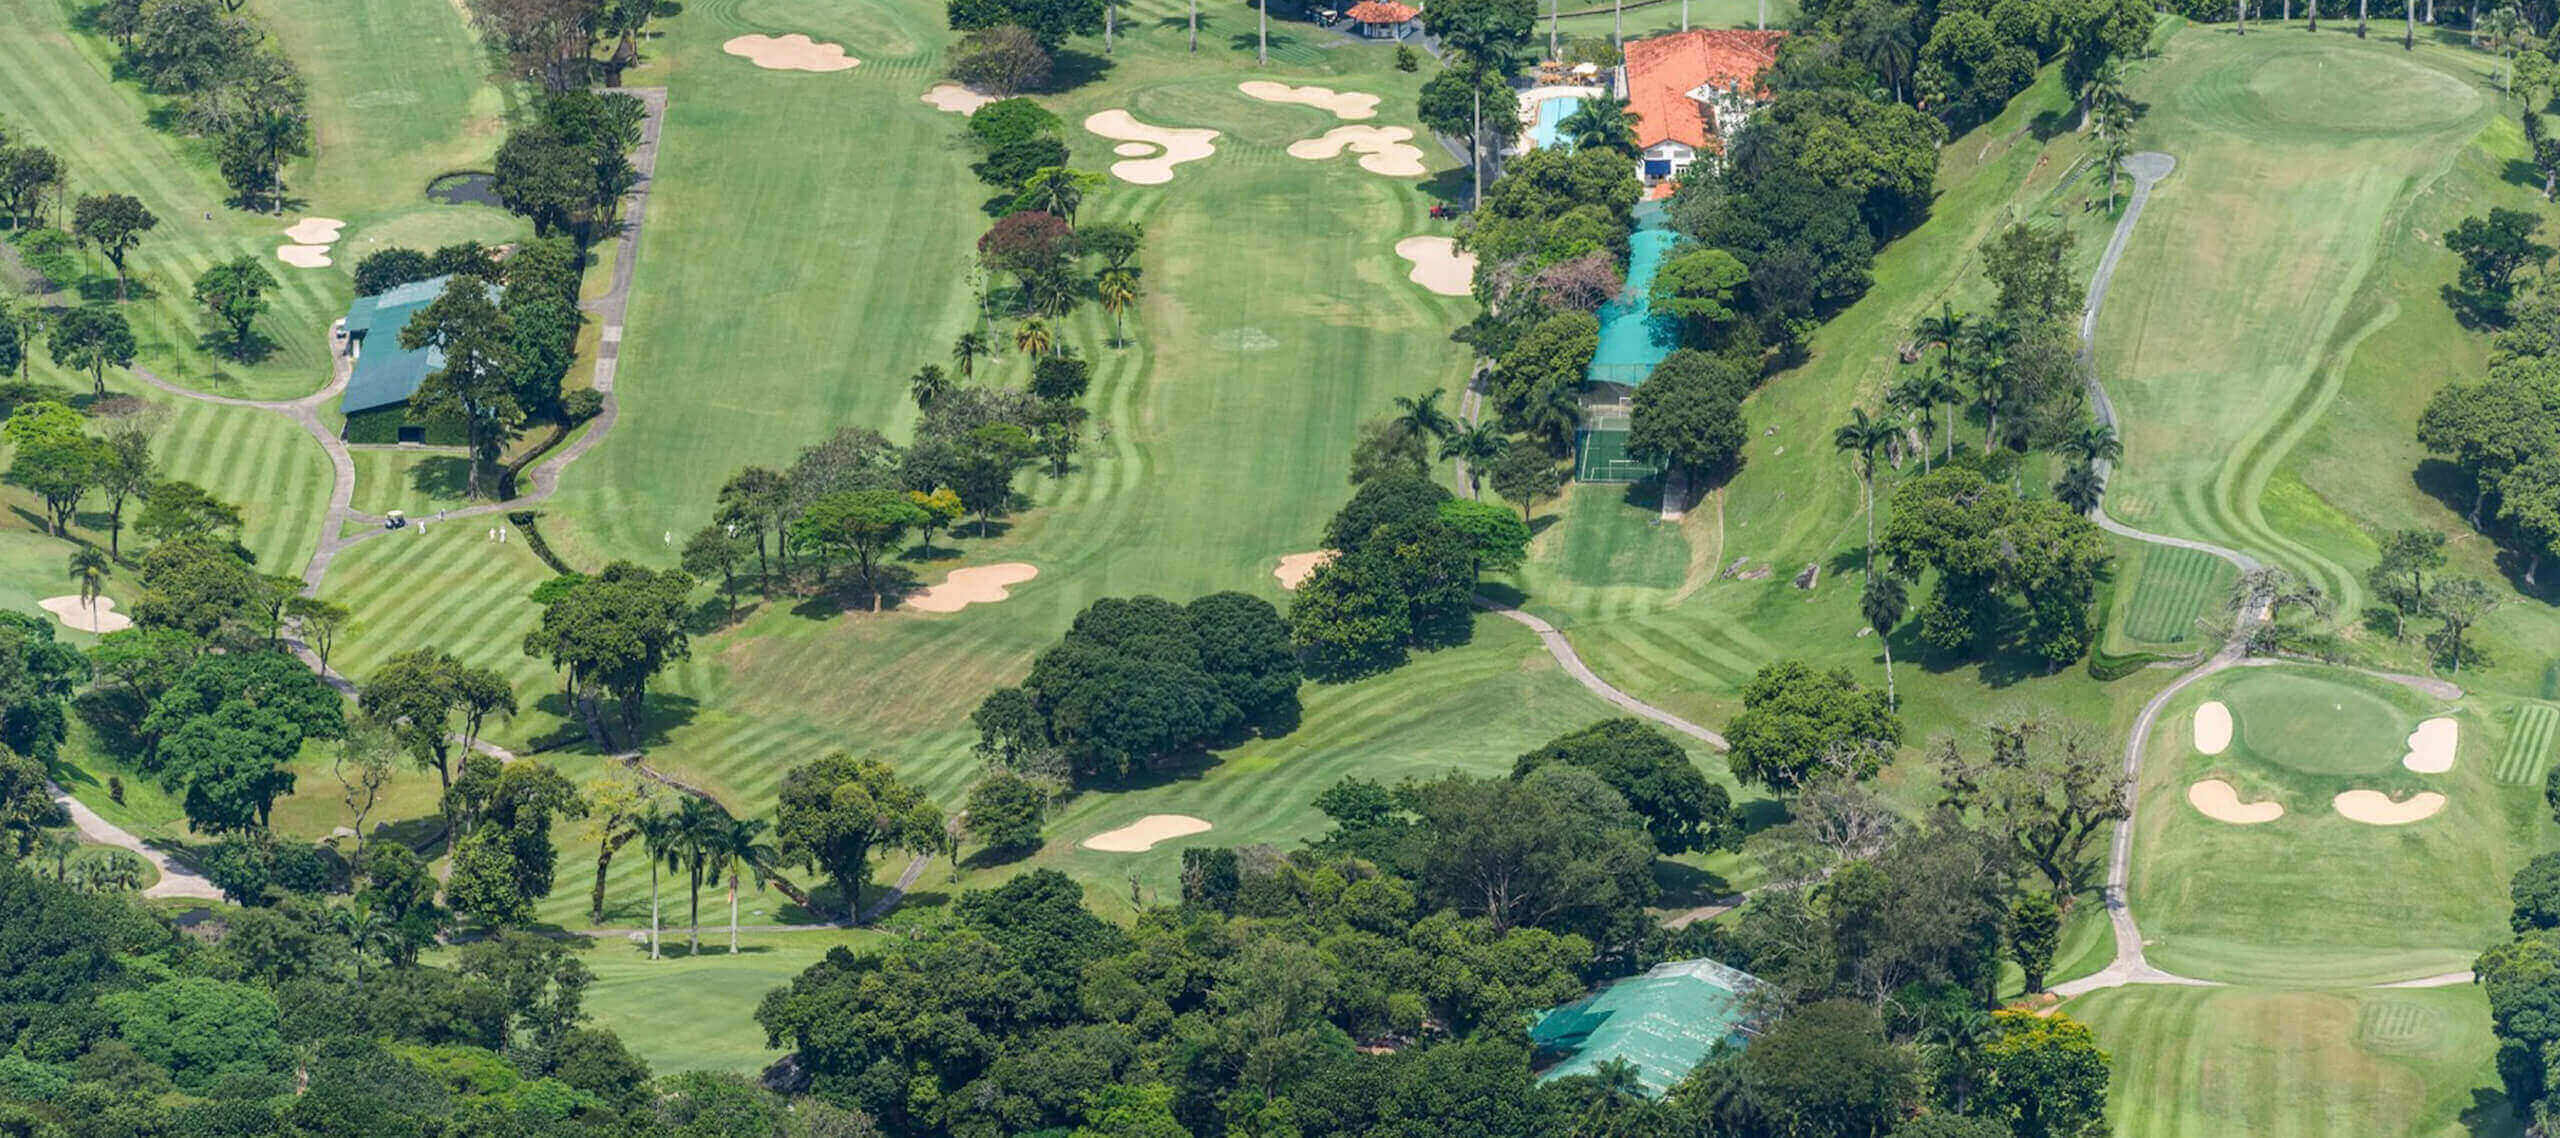 Aerial view of a golf course in Brazil